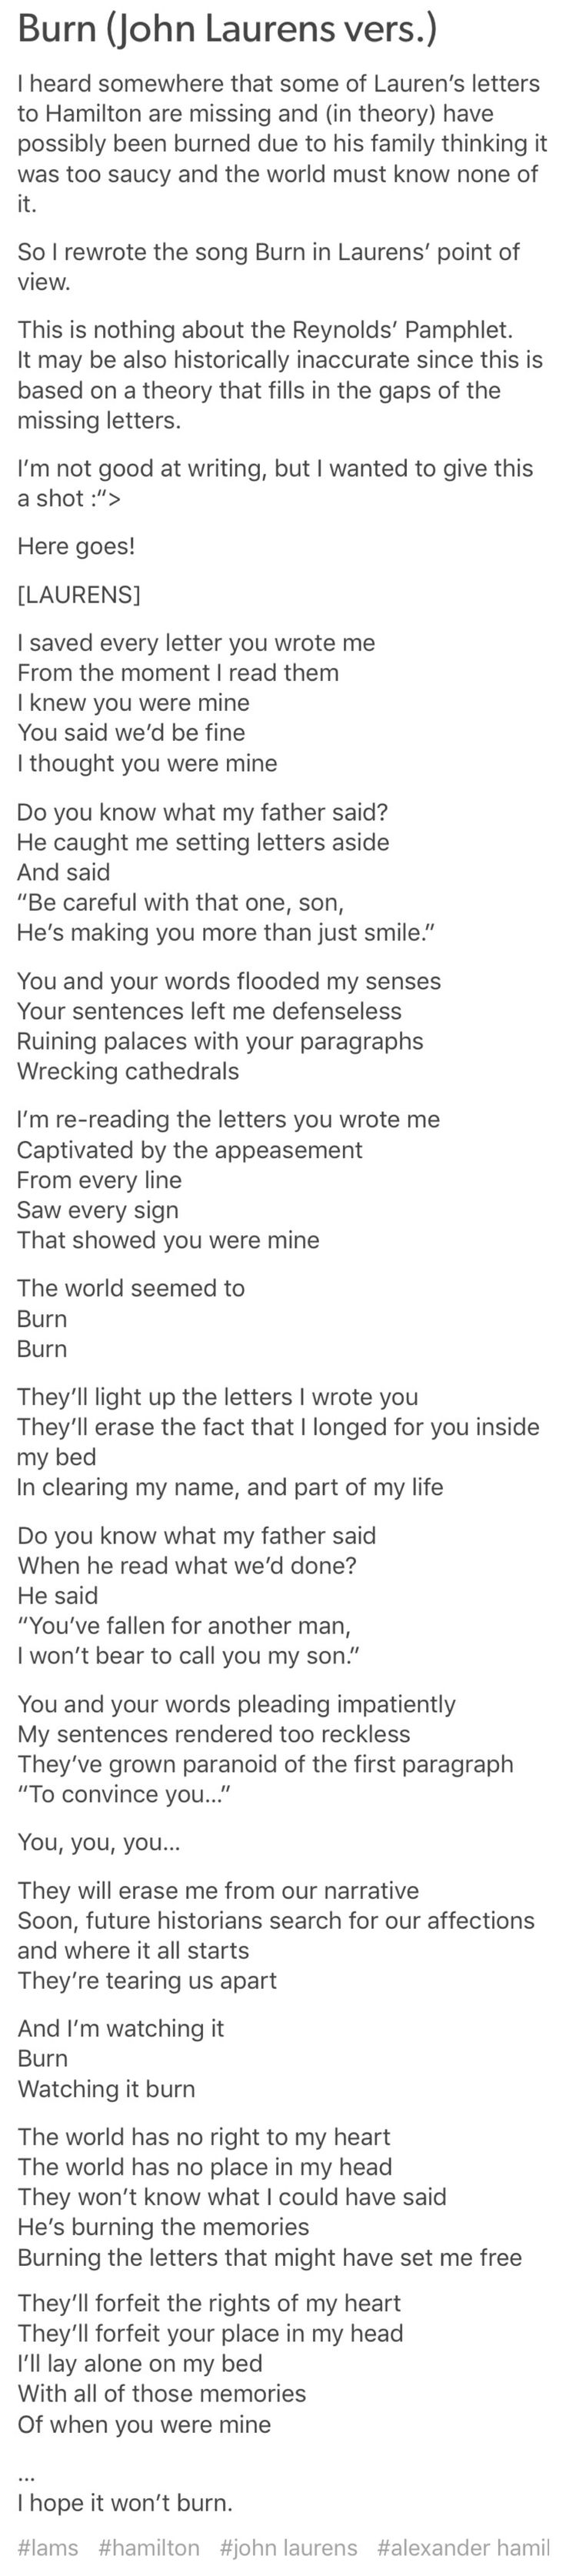 """Burn"" John Laurens Version.  OH MY GOD ITS SI BEAUTIFUL I LIVE IT SO MUCH"